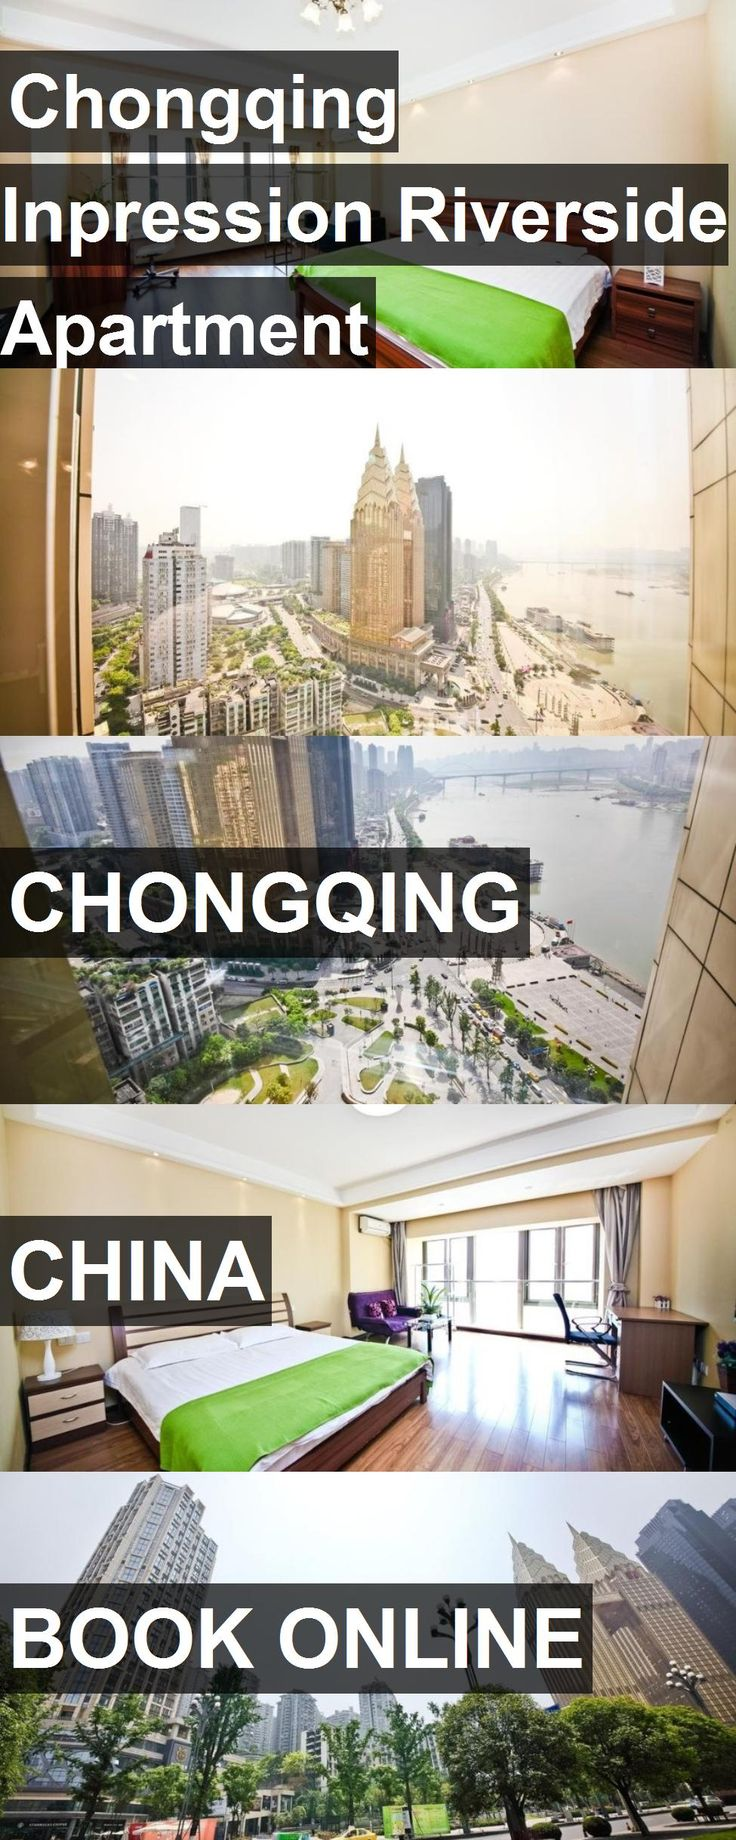 Chongqing Inpression Riverside Apartment in Chongqing, China. For more information, photos, reviews and best prices please follow the link. #China #Chongqing #travel #vacation #apartment